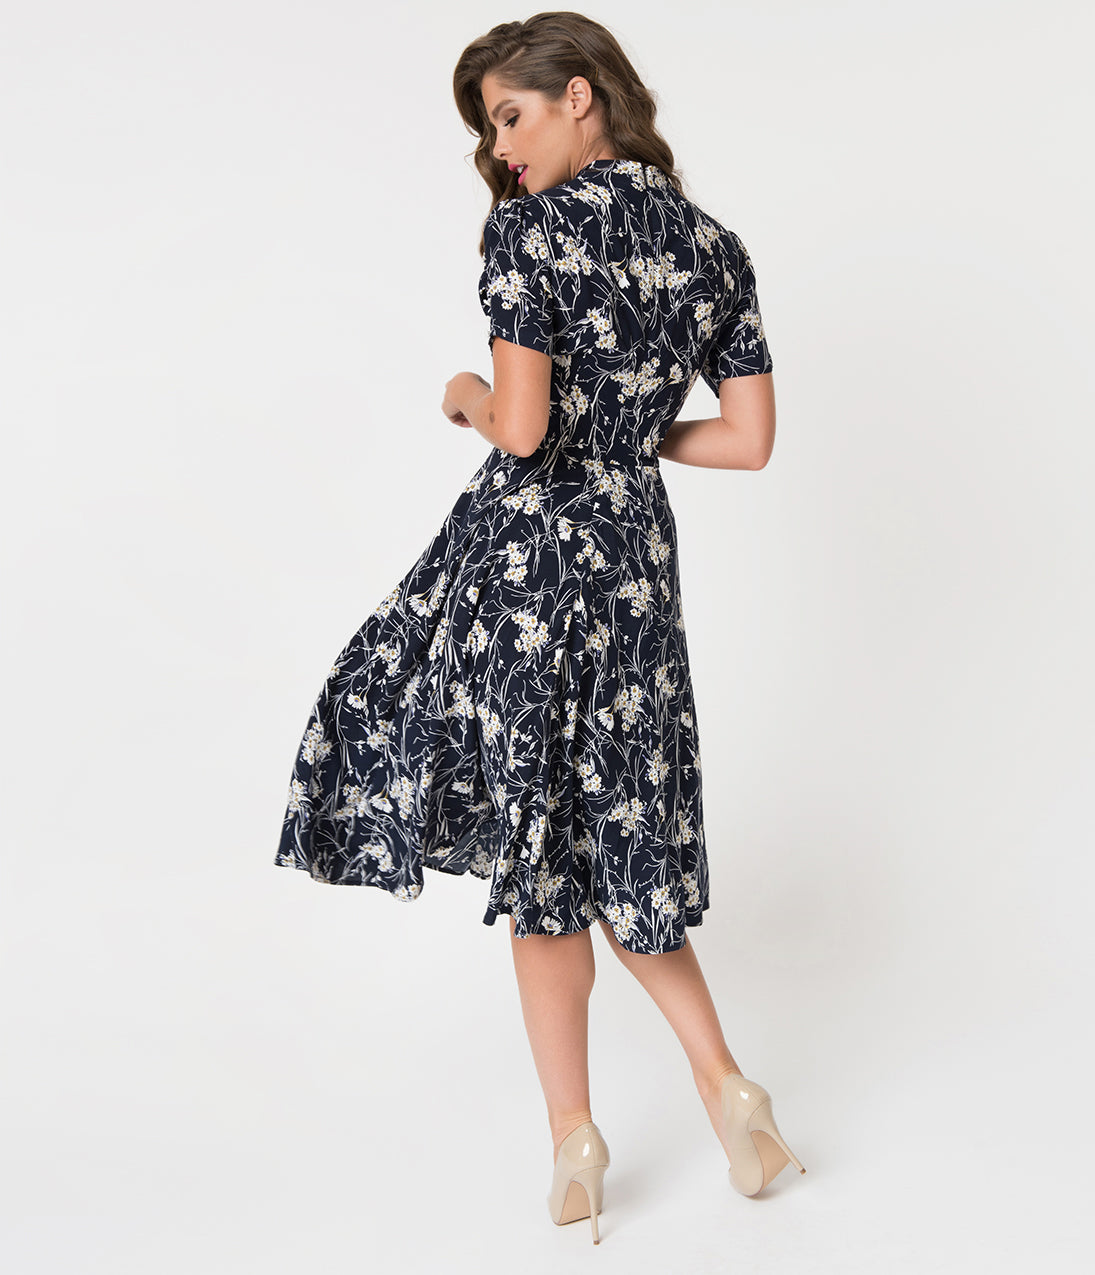 e04b255925 1940s Style Black   White Florals Short Sleeve Sadie Swing Dress ...